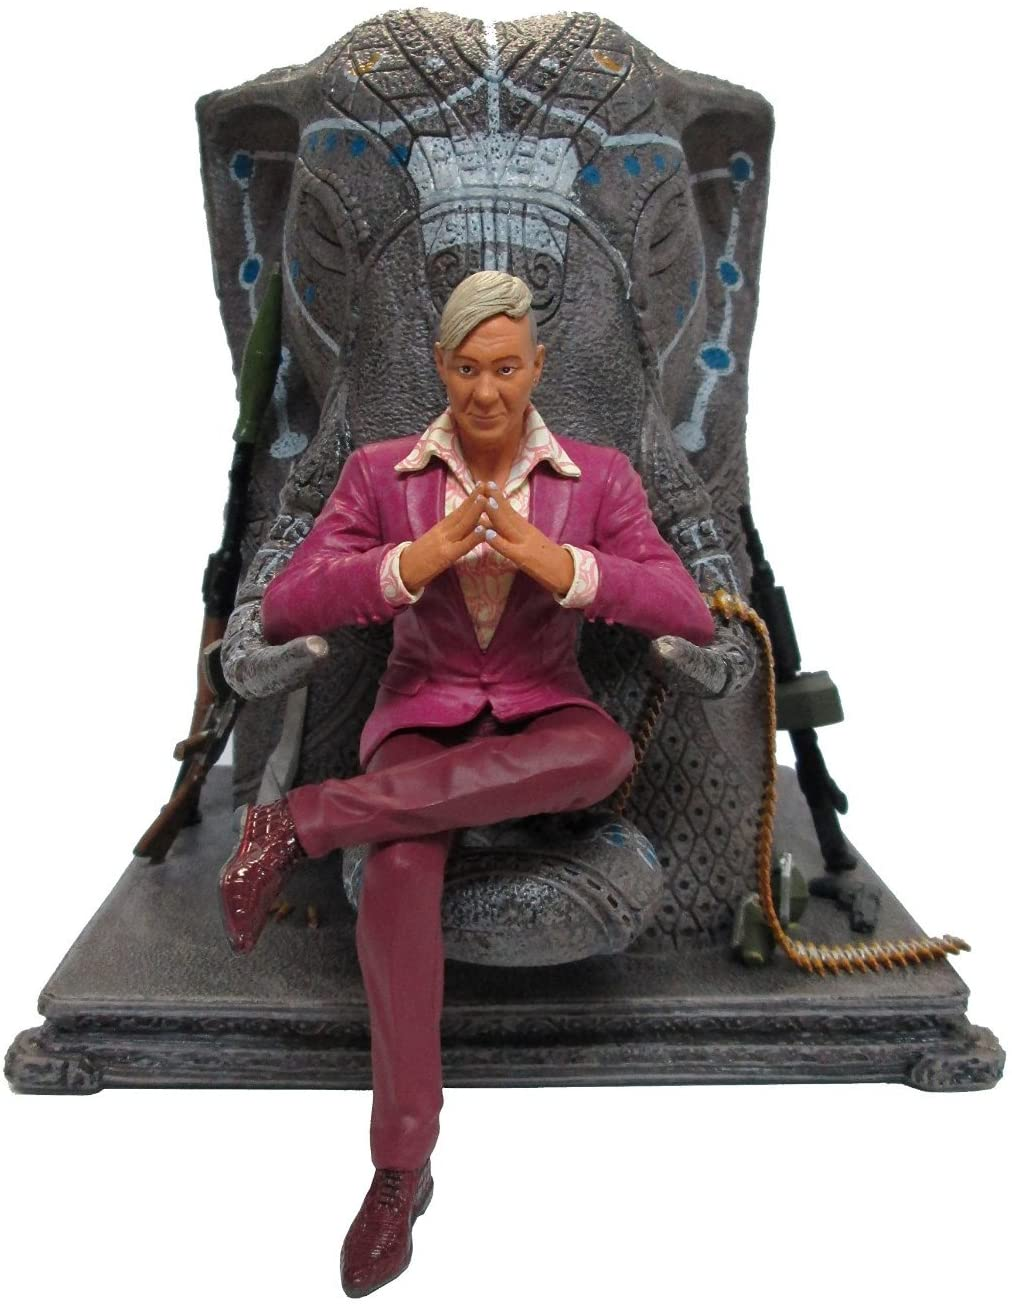 "Ubisoft Far Cry 4 Pagan Min 7.9"" Figurine on Elephant Throne"